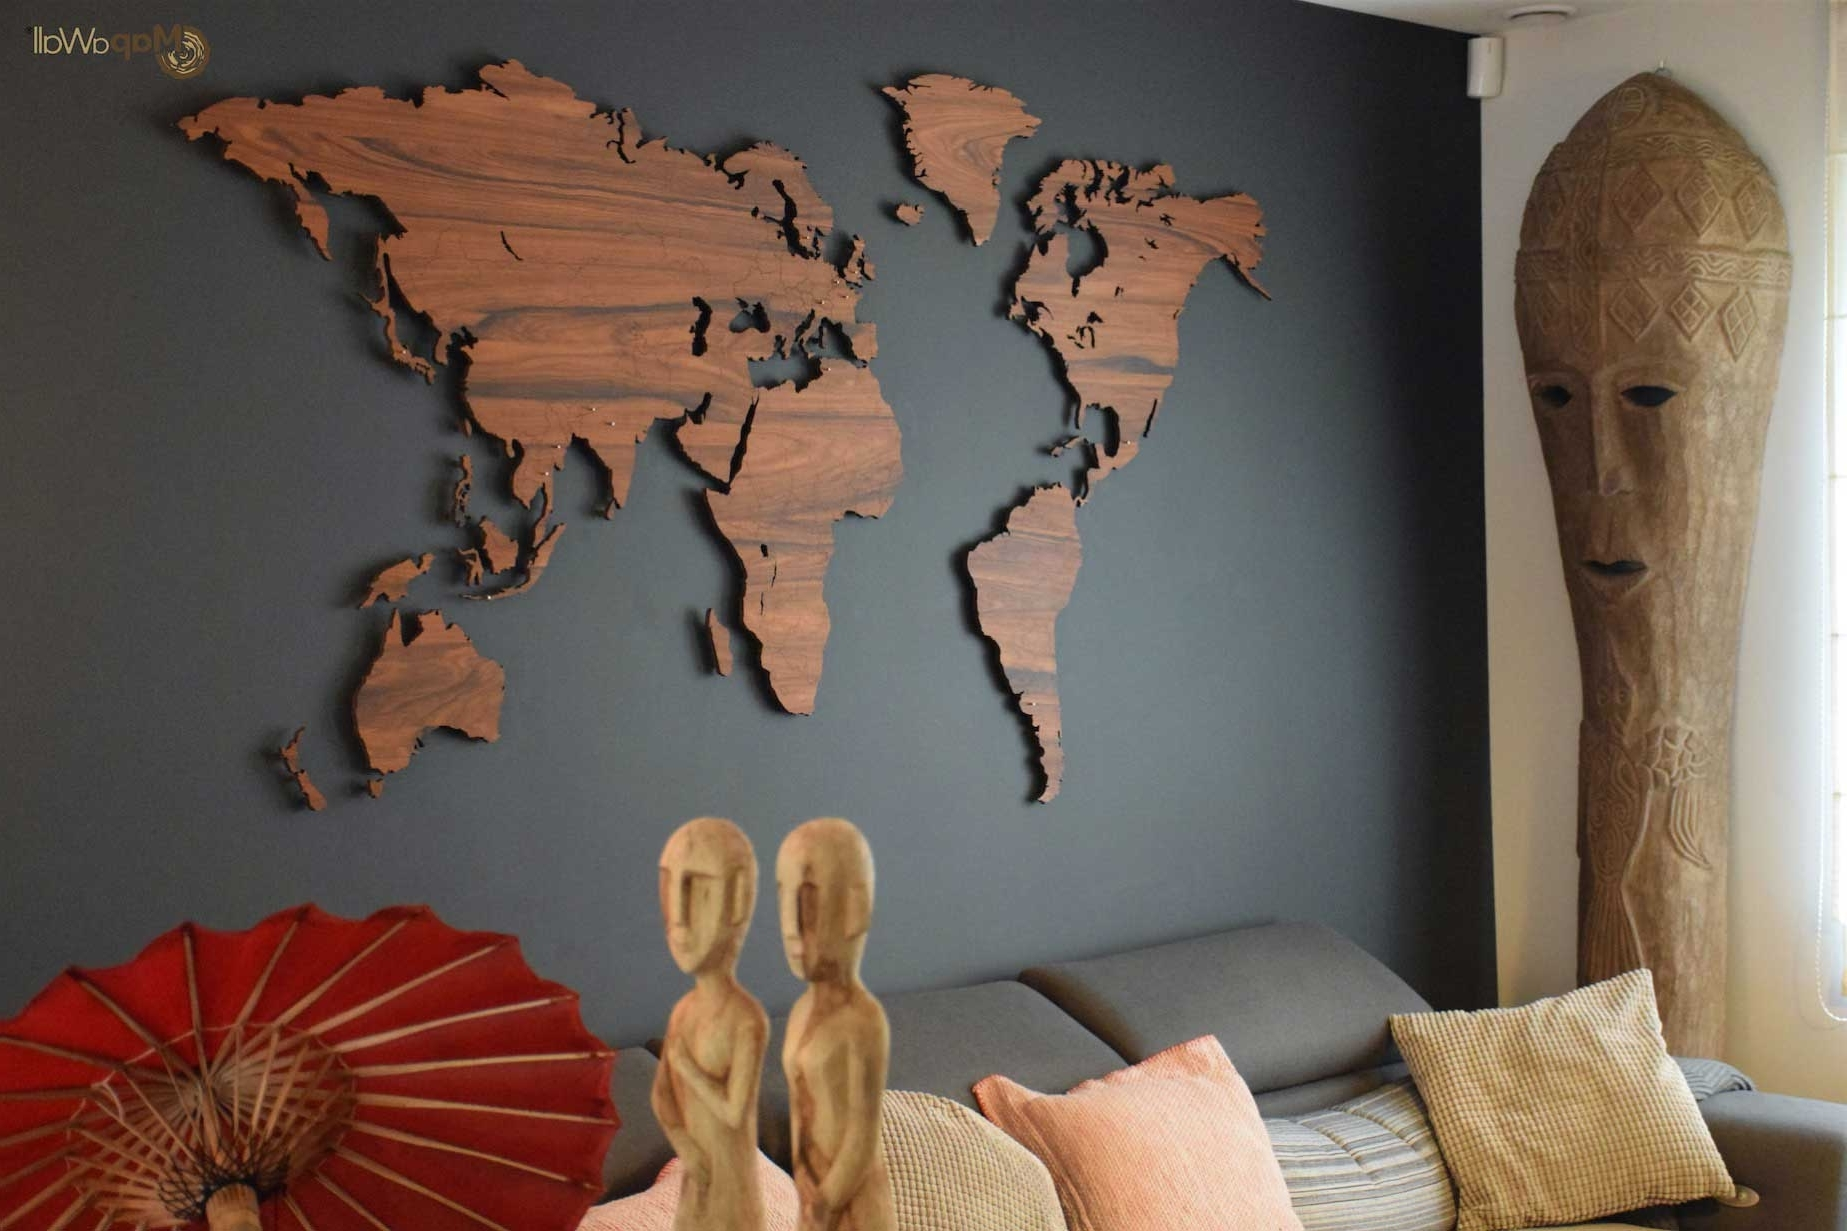 Newest Wooden World Map Wall Art Zarzosa Me For Wood Madriver And In Cool Map Wall Art (View 10 of 15)